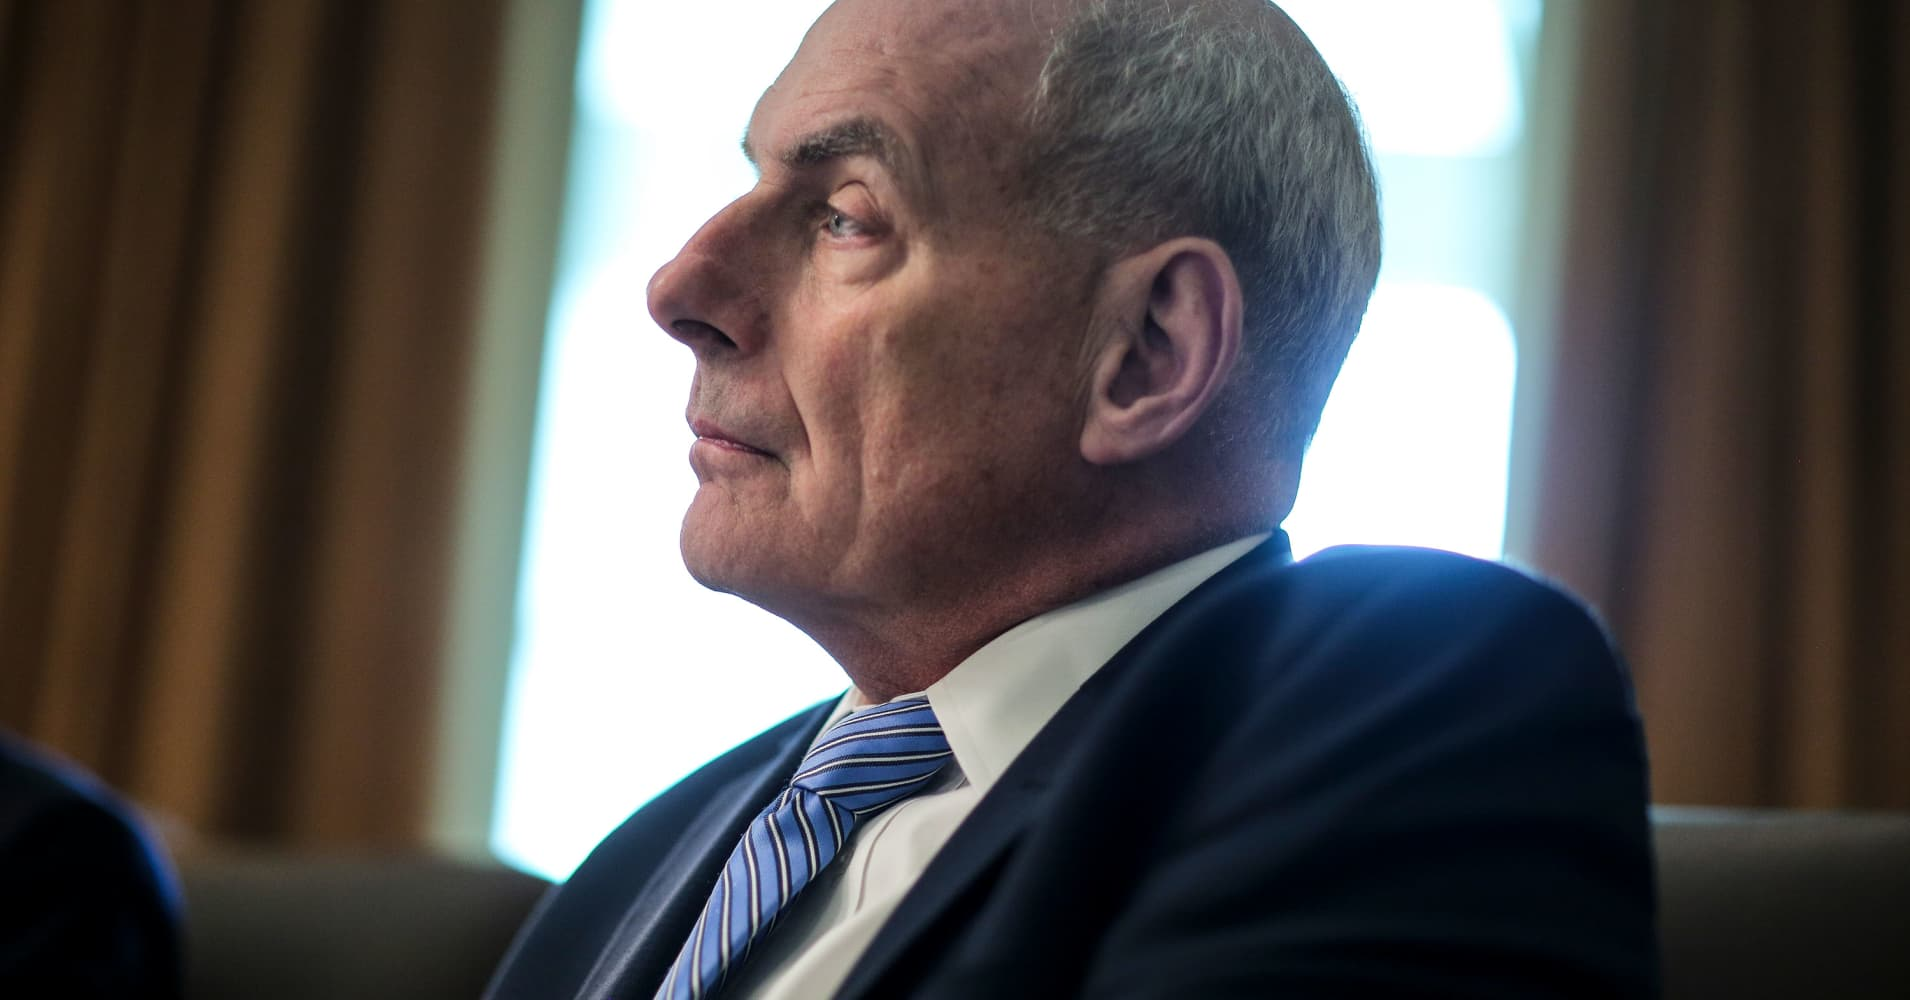 John Kelly may leave after clashing with the first lady Melania Trump: NBC News